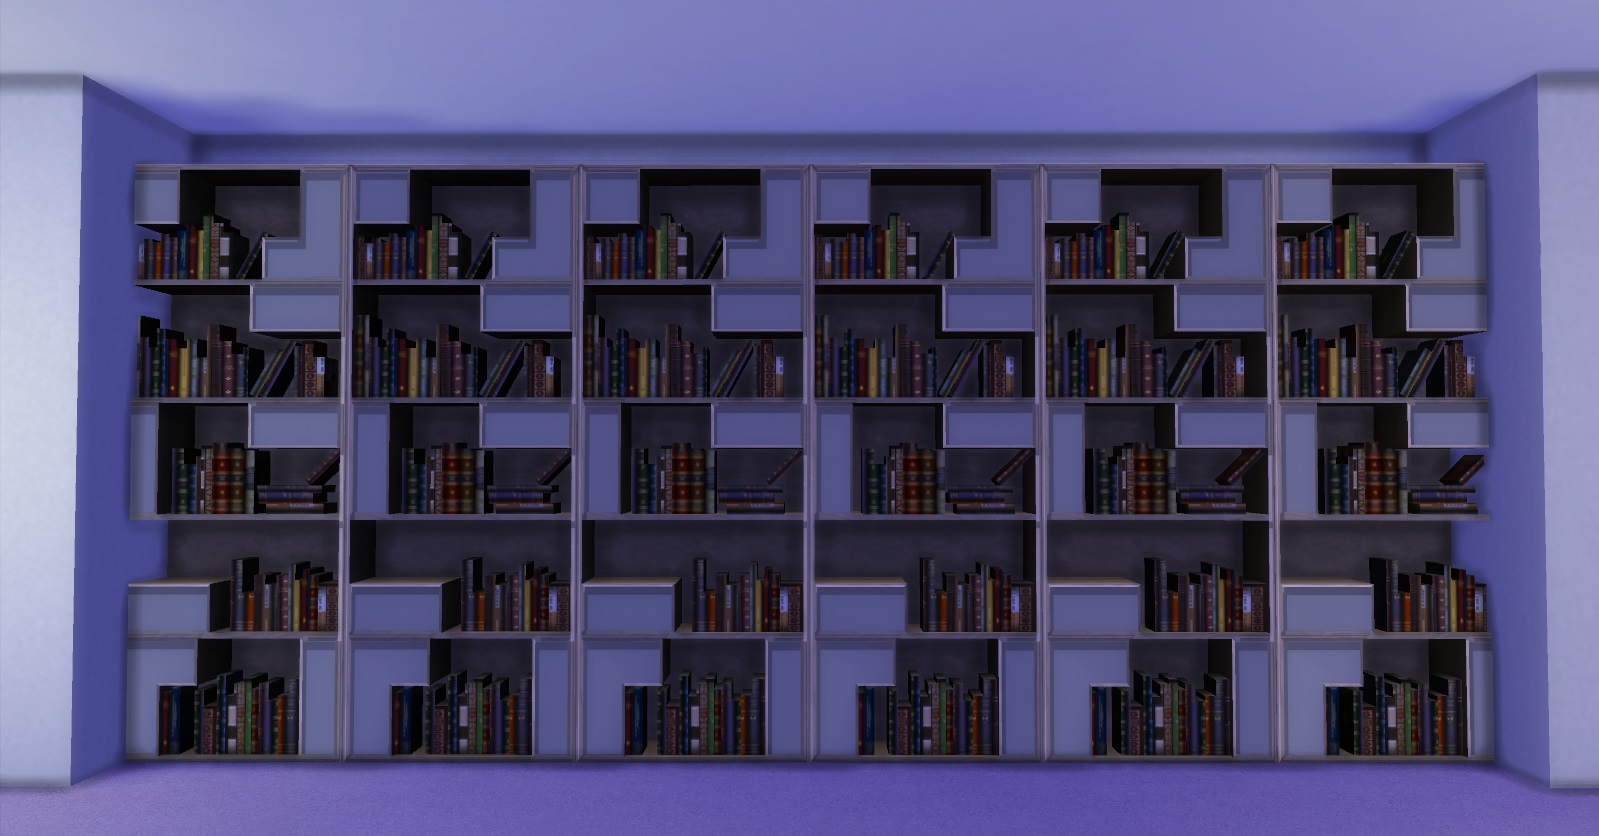 Wonderful image of Mod The Sims Poetic Bookshelf with #715F38 color and 1599x836 pixels